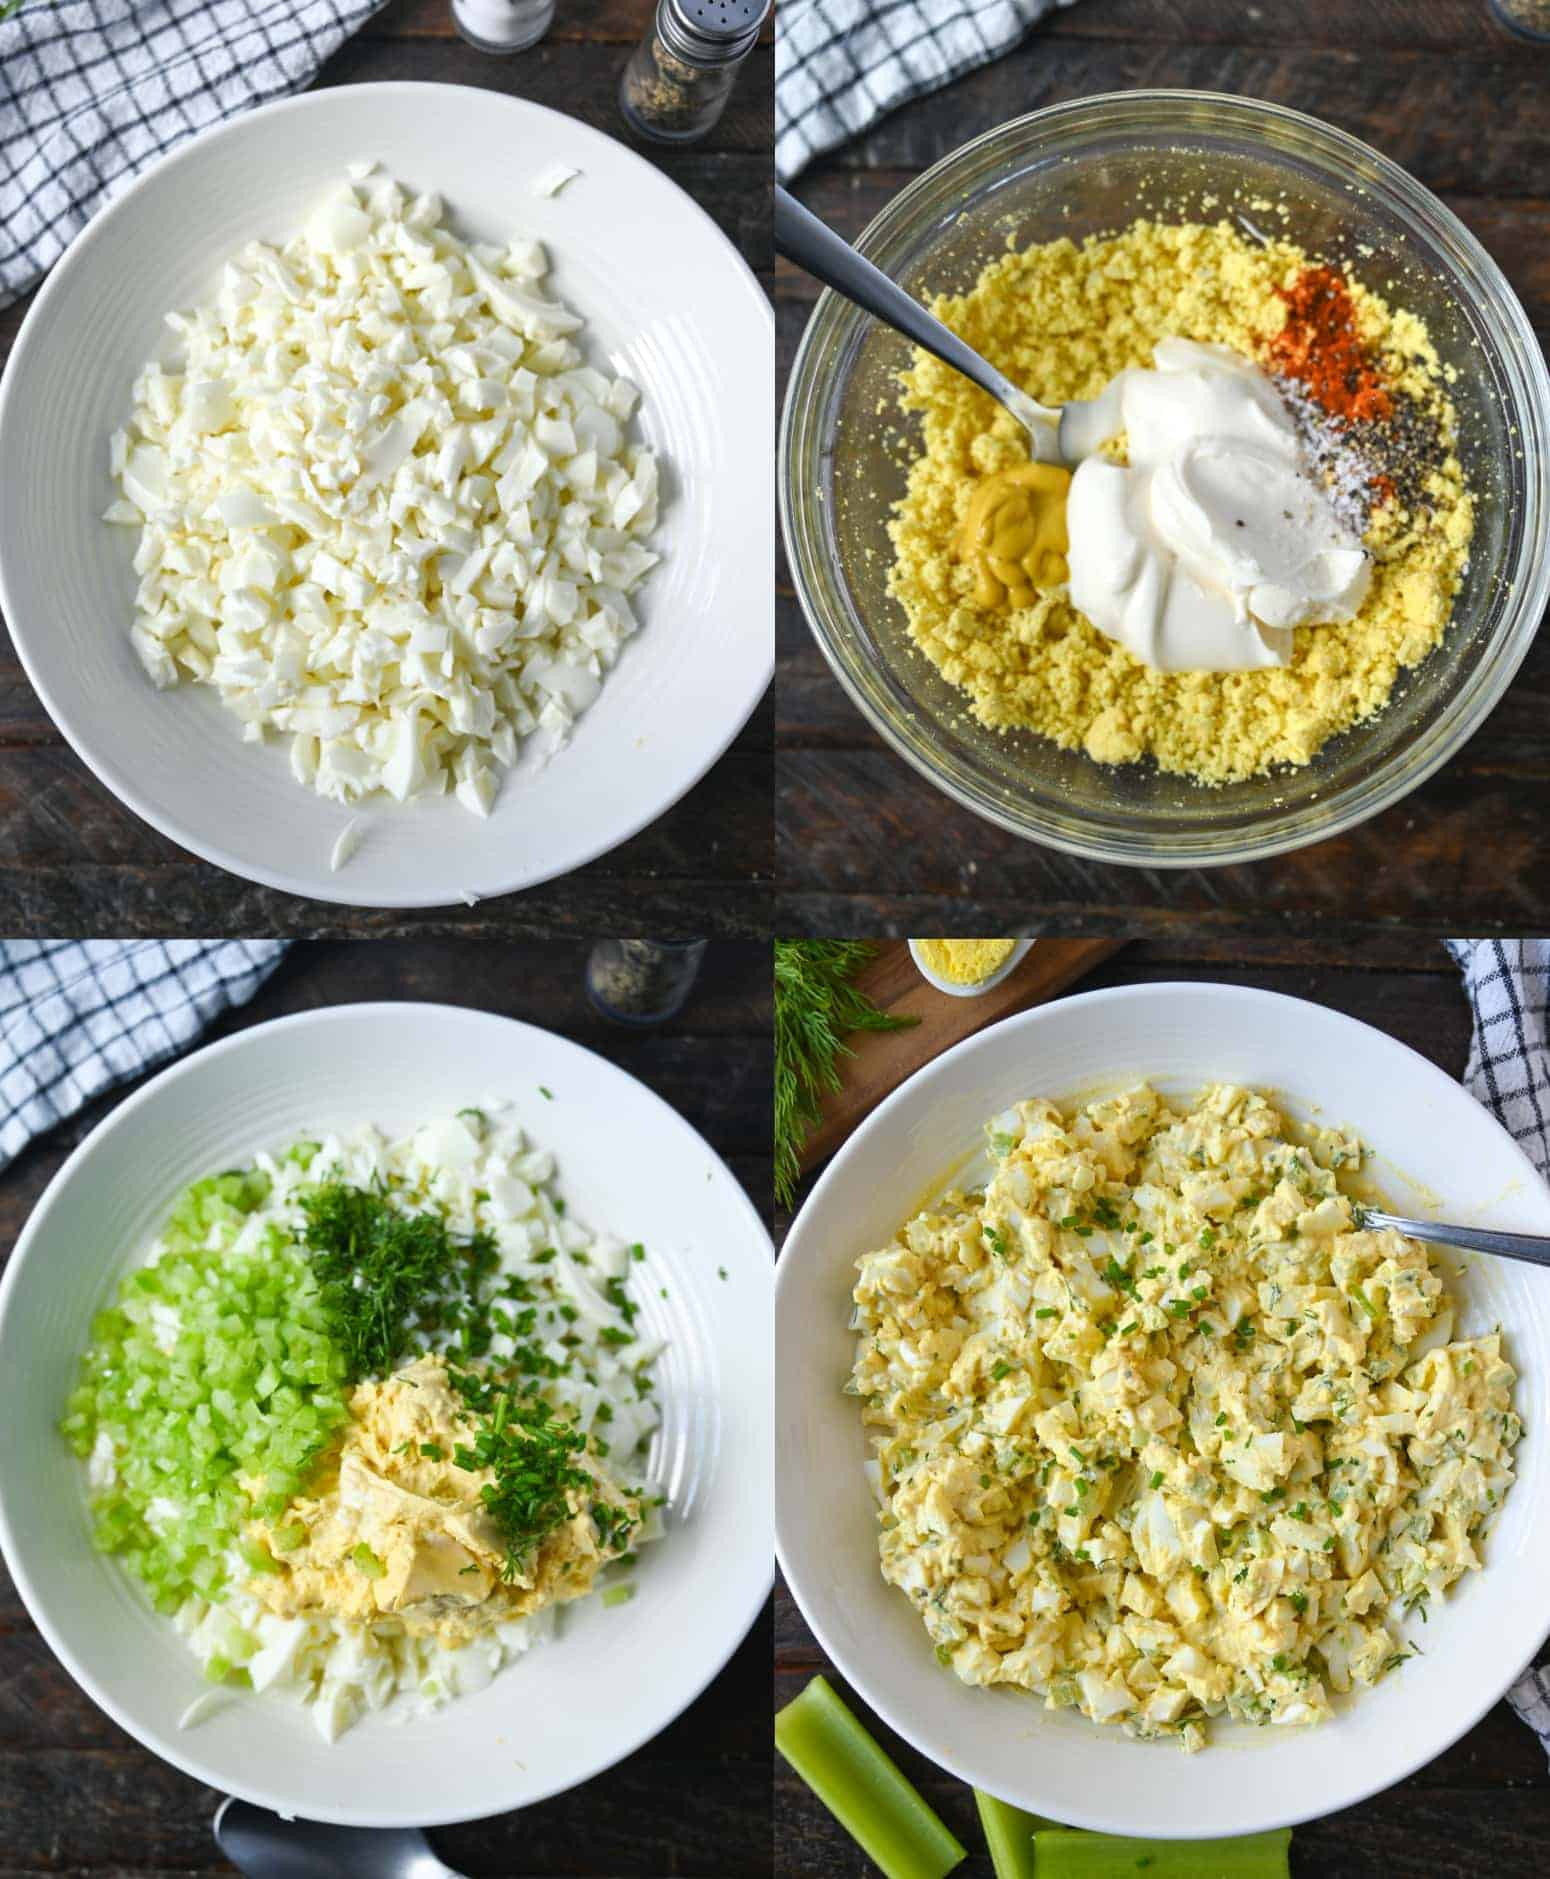 Four process photos. First one, chopped up egg white placed into a white bowl. Second one, mashed egg yolks with mayo and spices ready to mix in. Third one, celery, chives and dill ready to min into the creamy yolks. Fourth one, egg salad all mixed together.